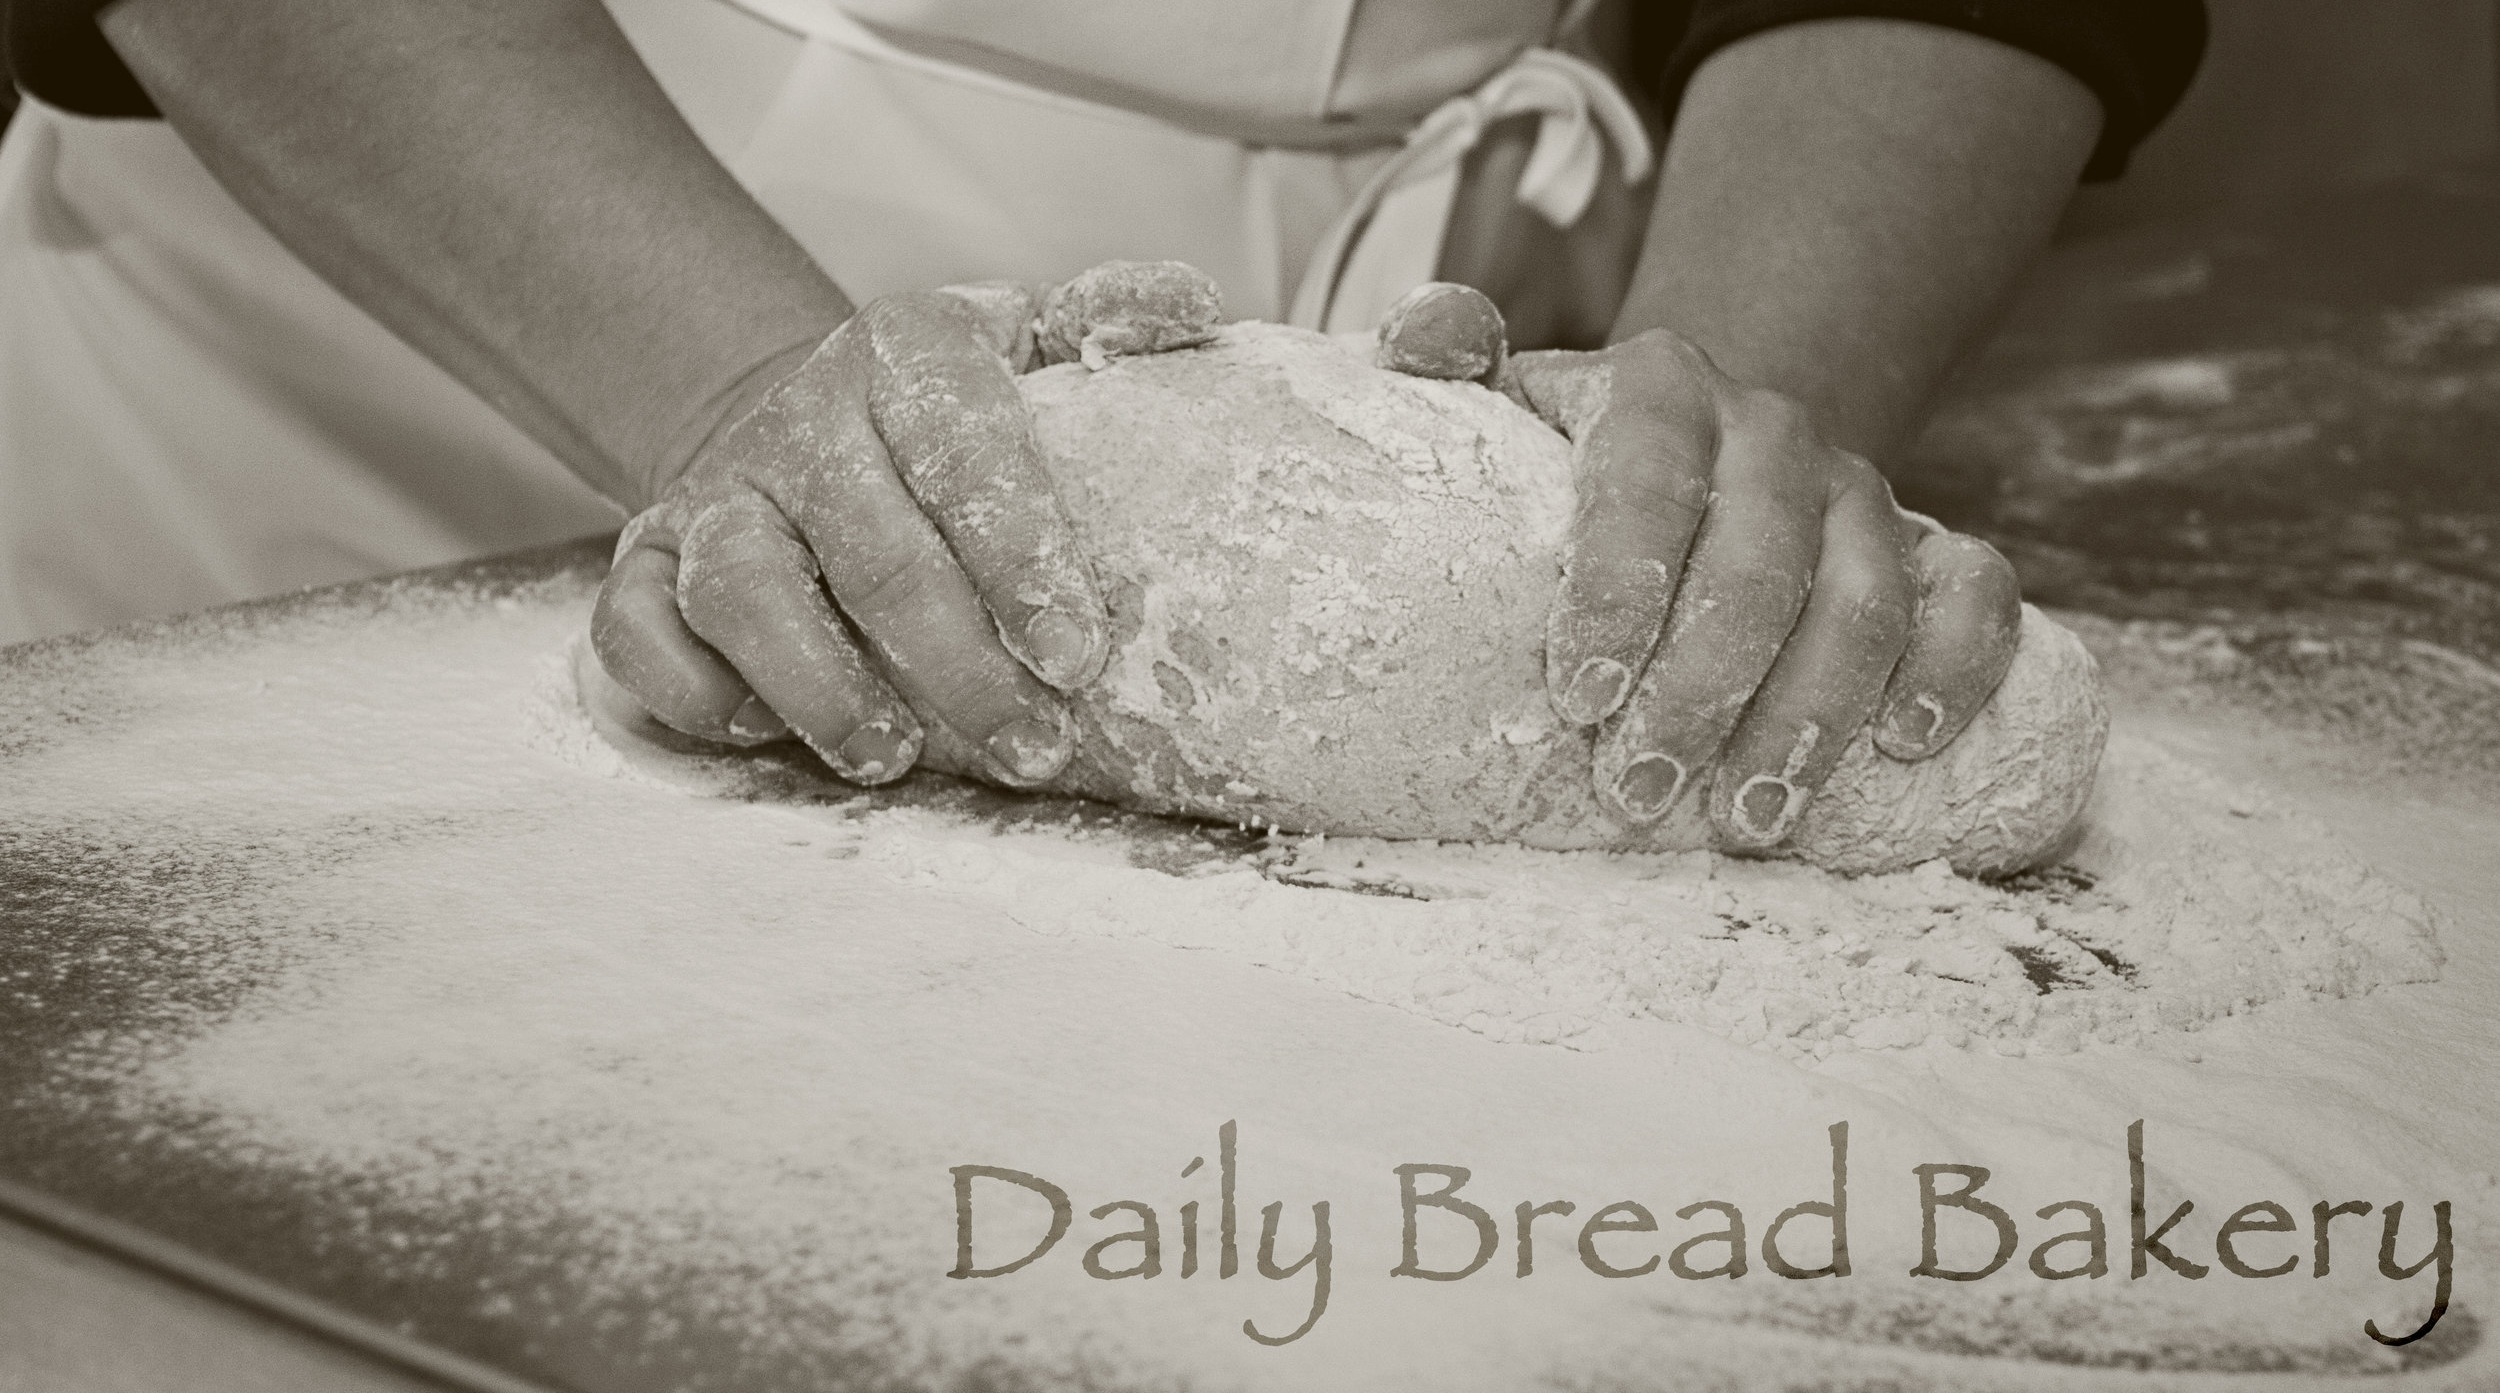 Daily Bread Bakery  - Bakery & Coffee Shop Timber Lake, SD - (701) 425-5575